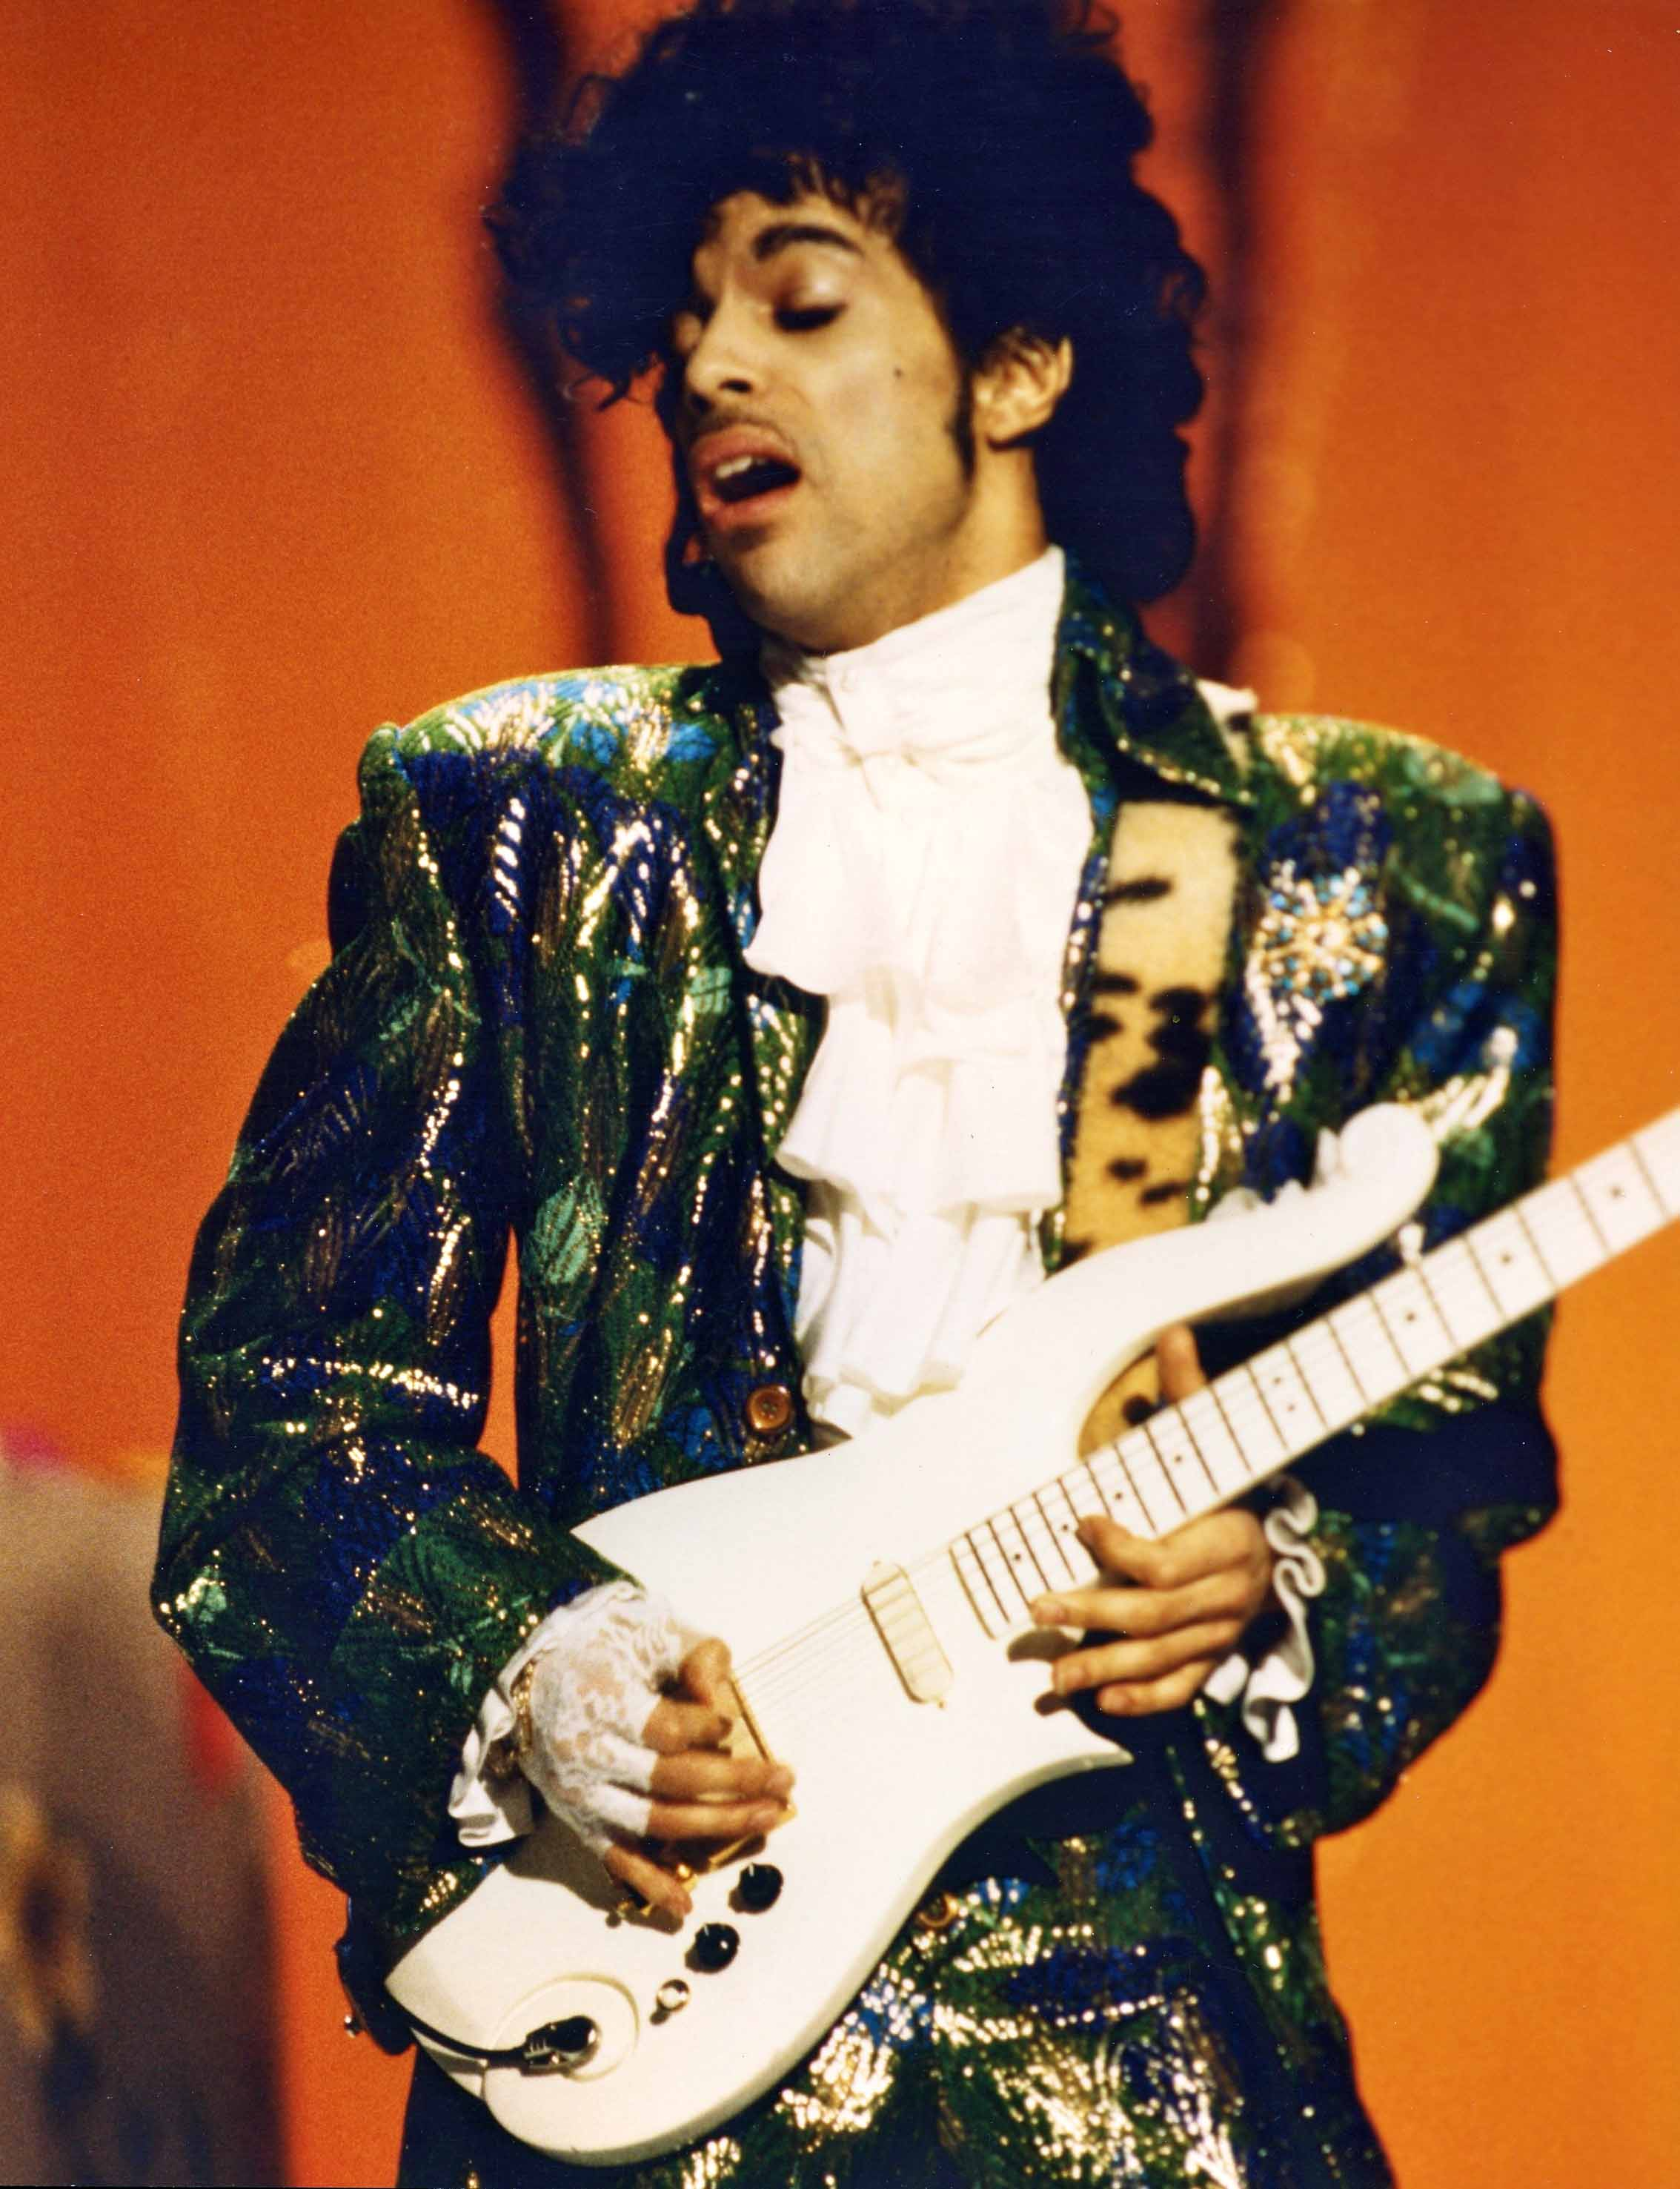 Fingerless gloves for musicians - Photo Gallery Prince At The American Music Awards American Music Awards